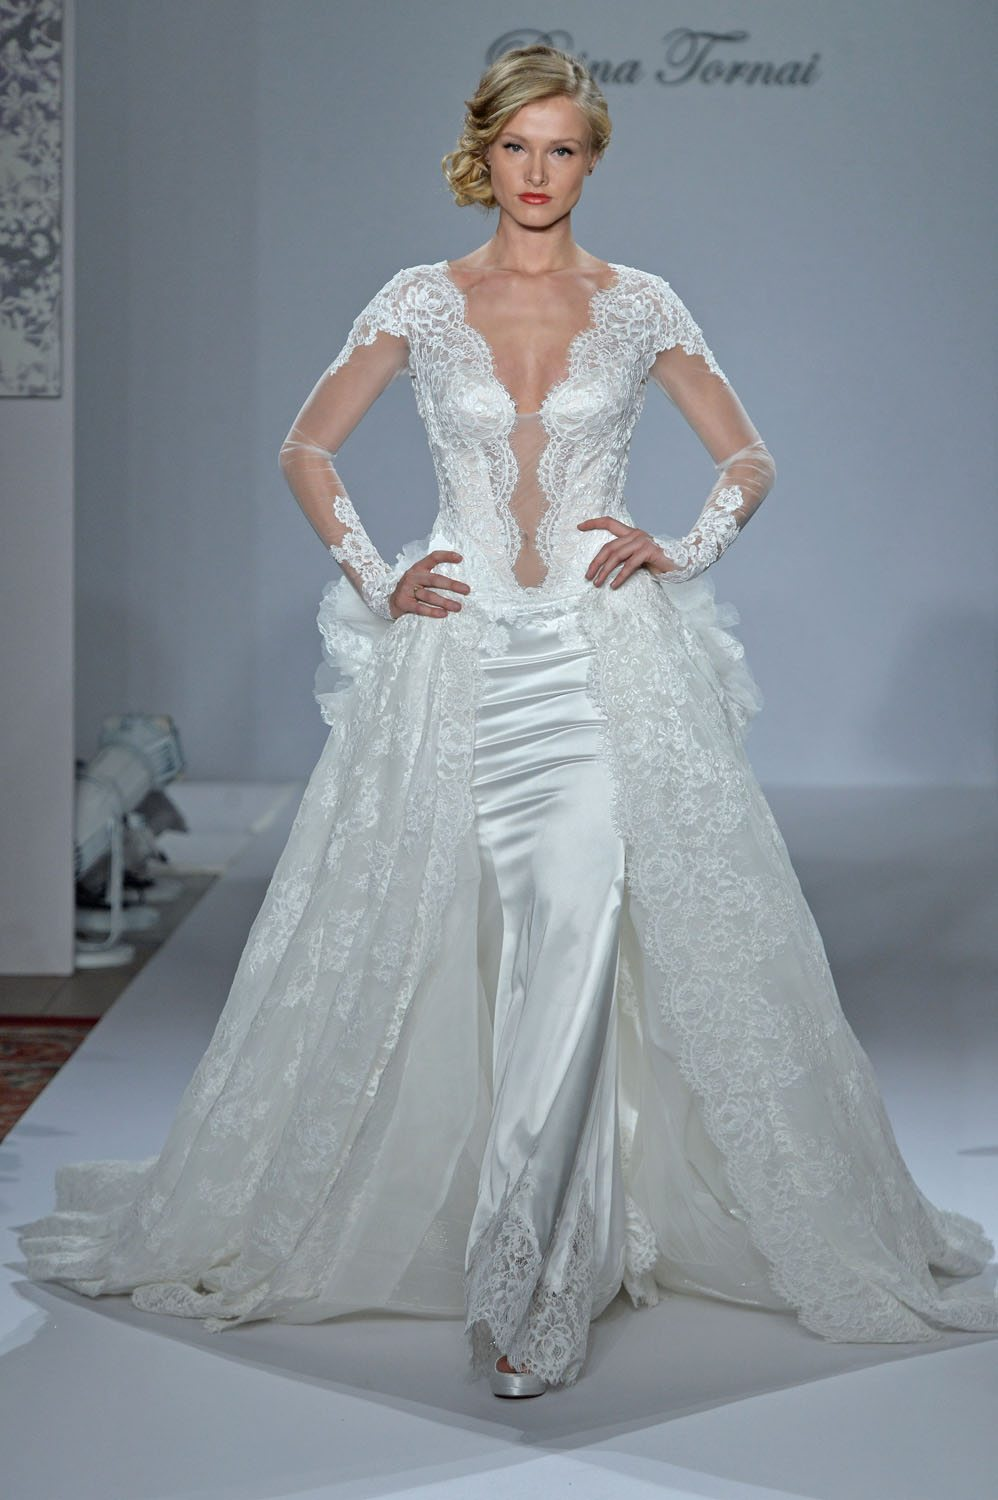 The Top Wedding Dress Trends For Fall 2015 | Weddingbells